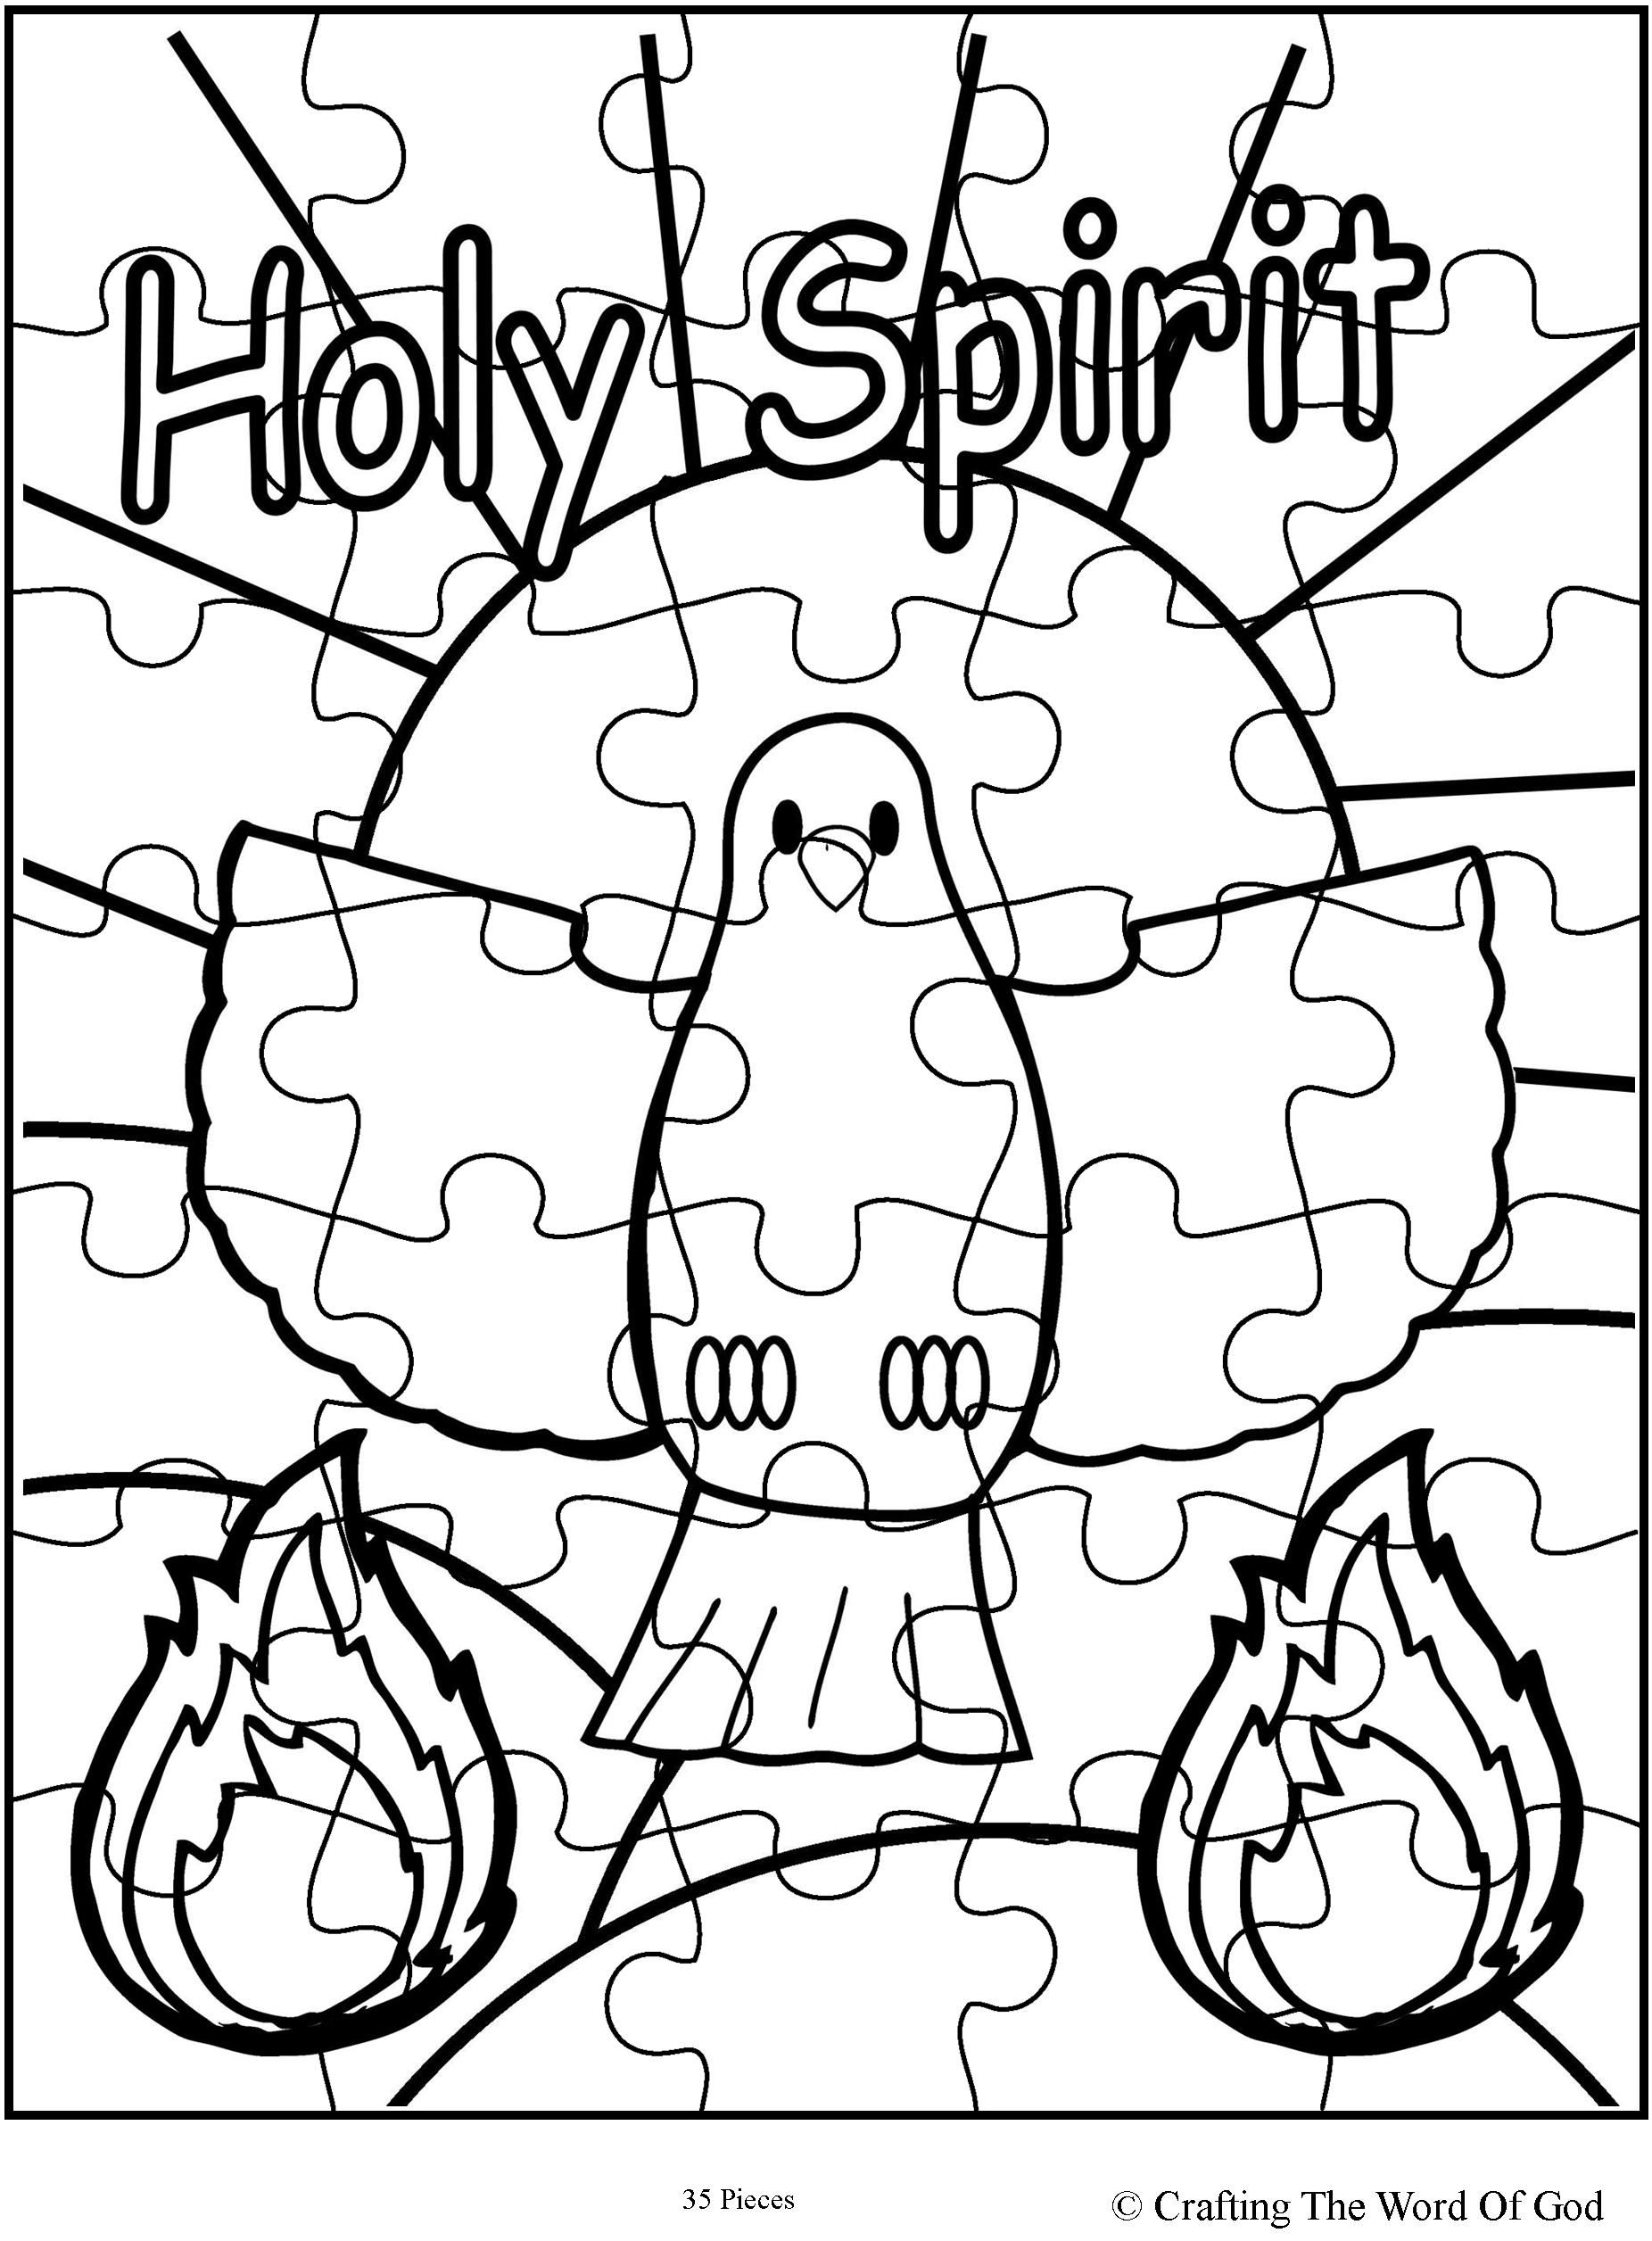 Holy Spirit Puzzle Activity Sheet Activity Sheets Are A